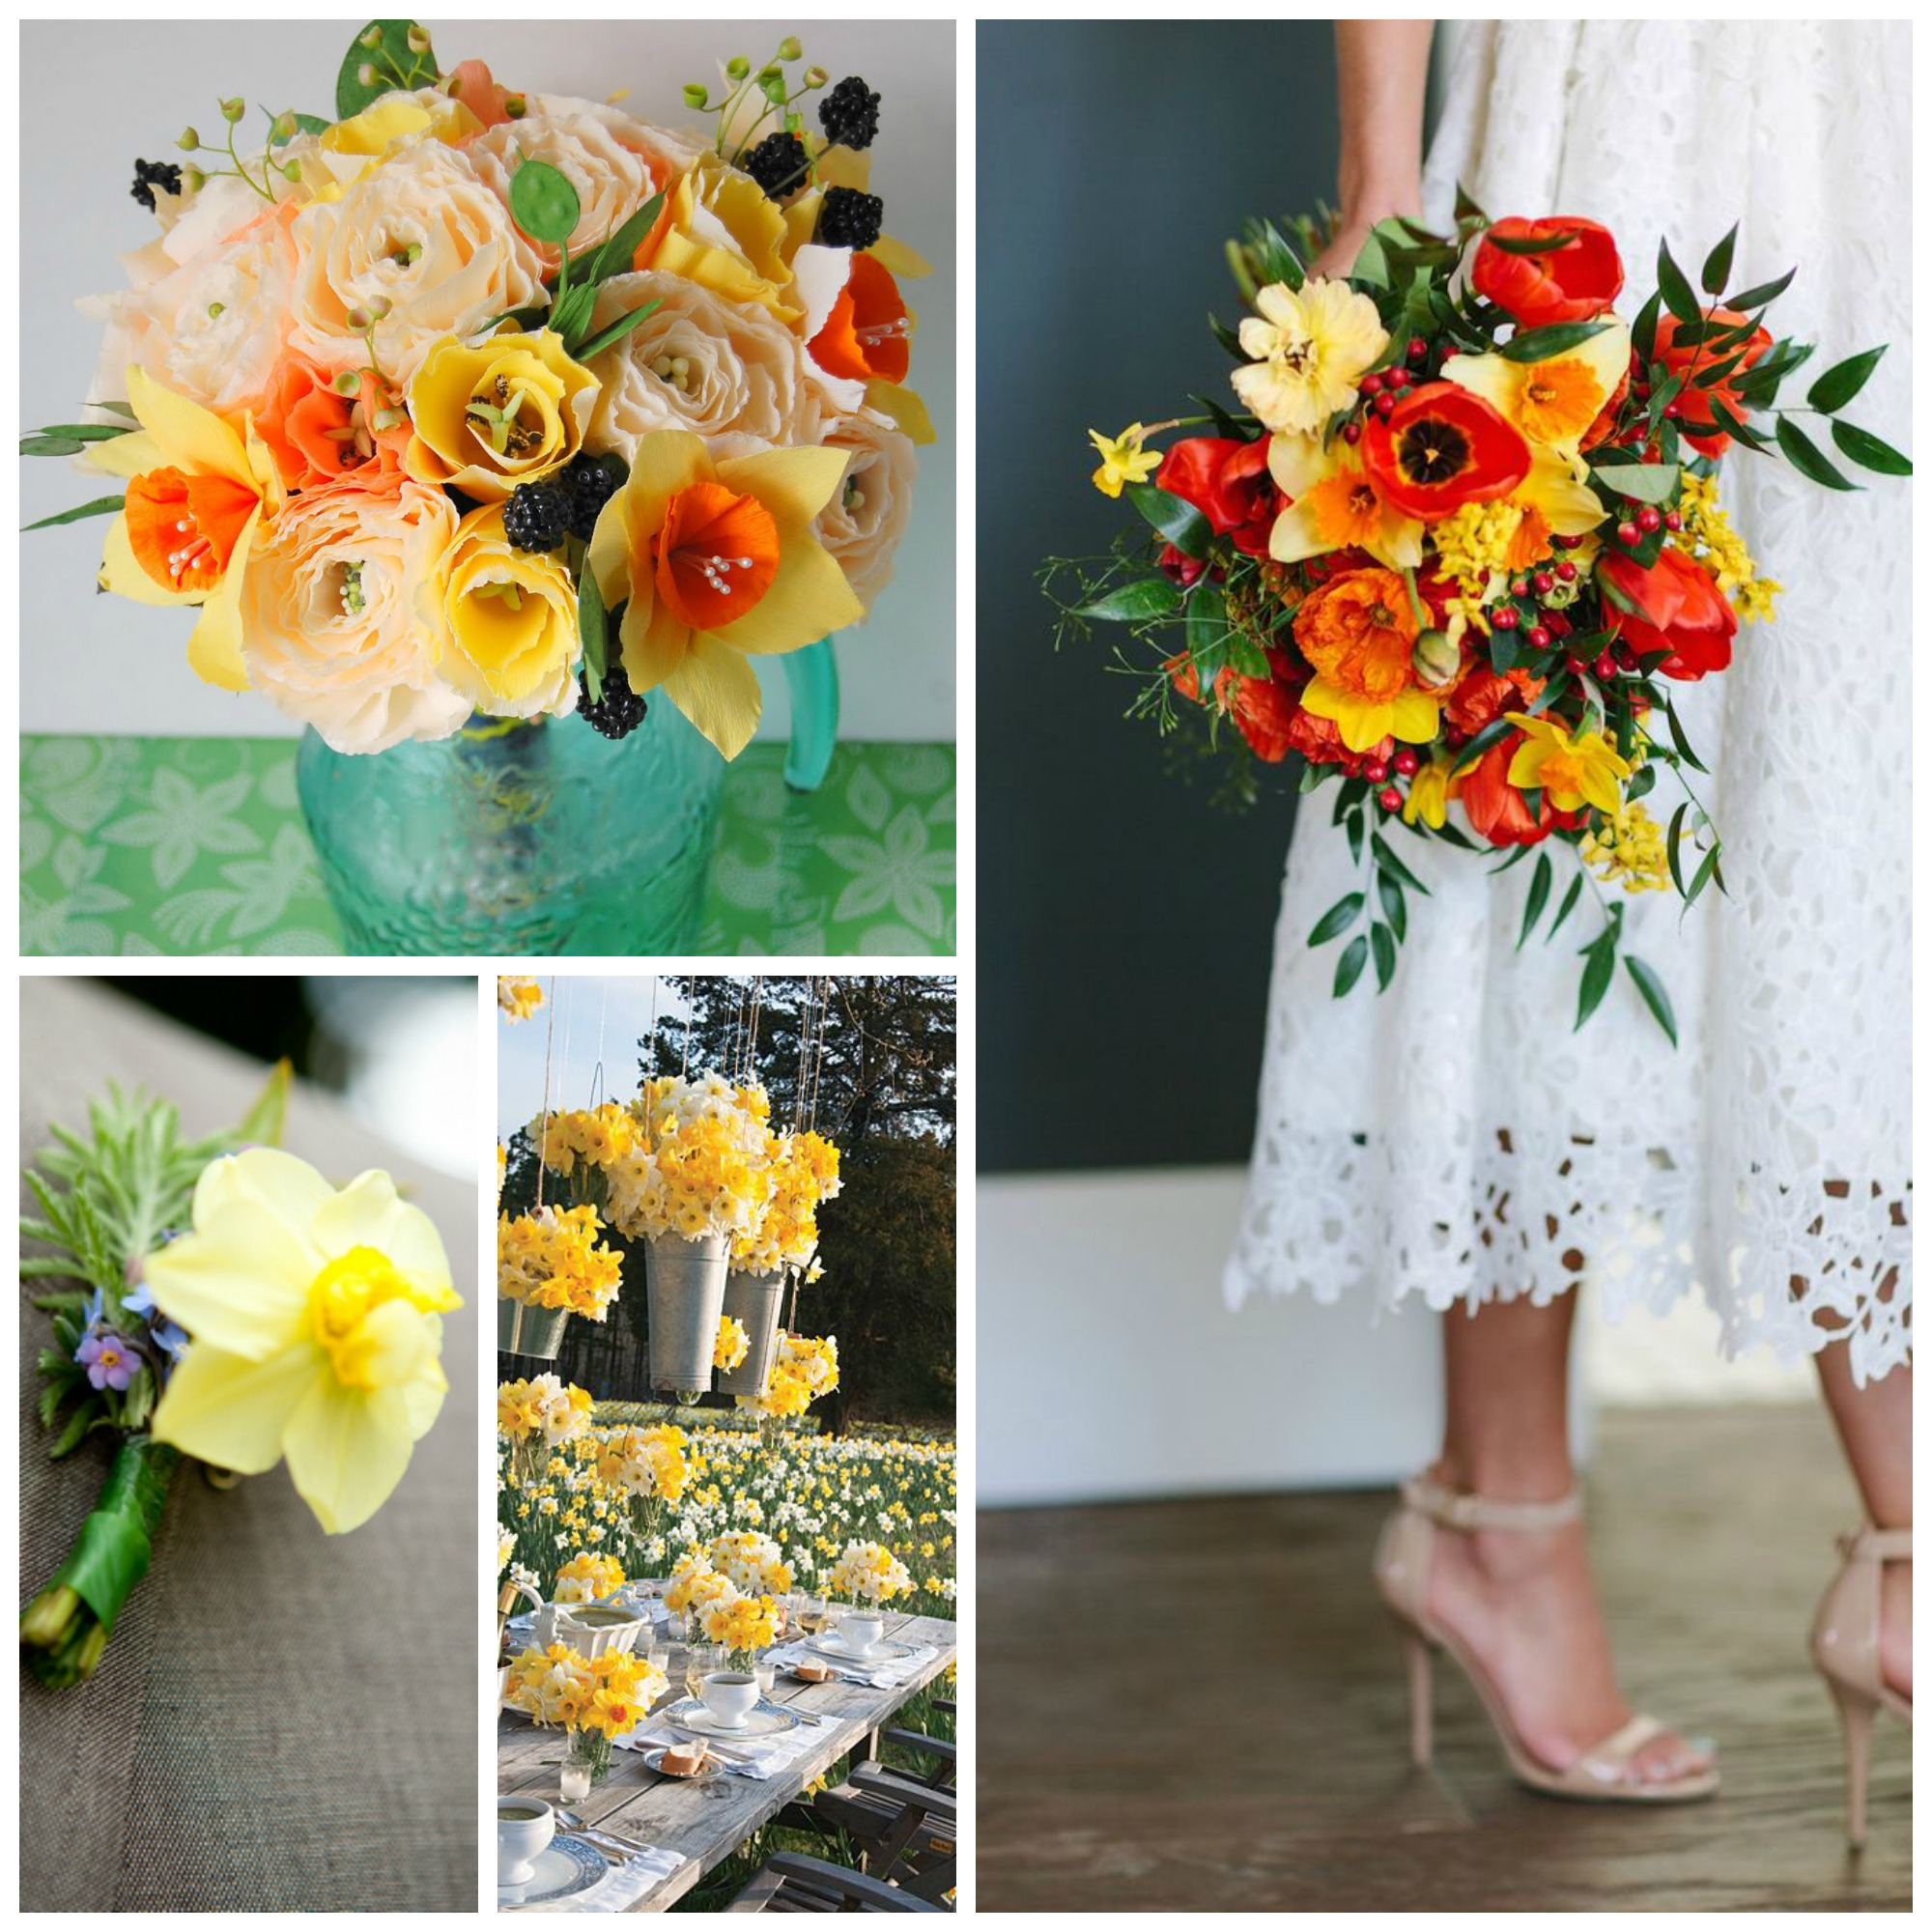 orange and yellow flowers roses poppies wedding bouquet